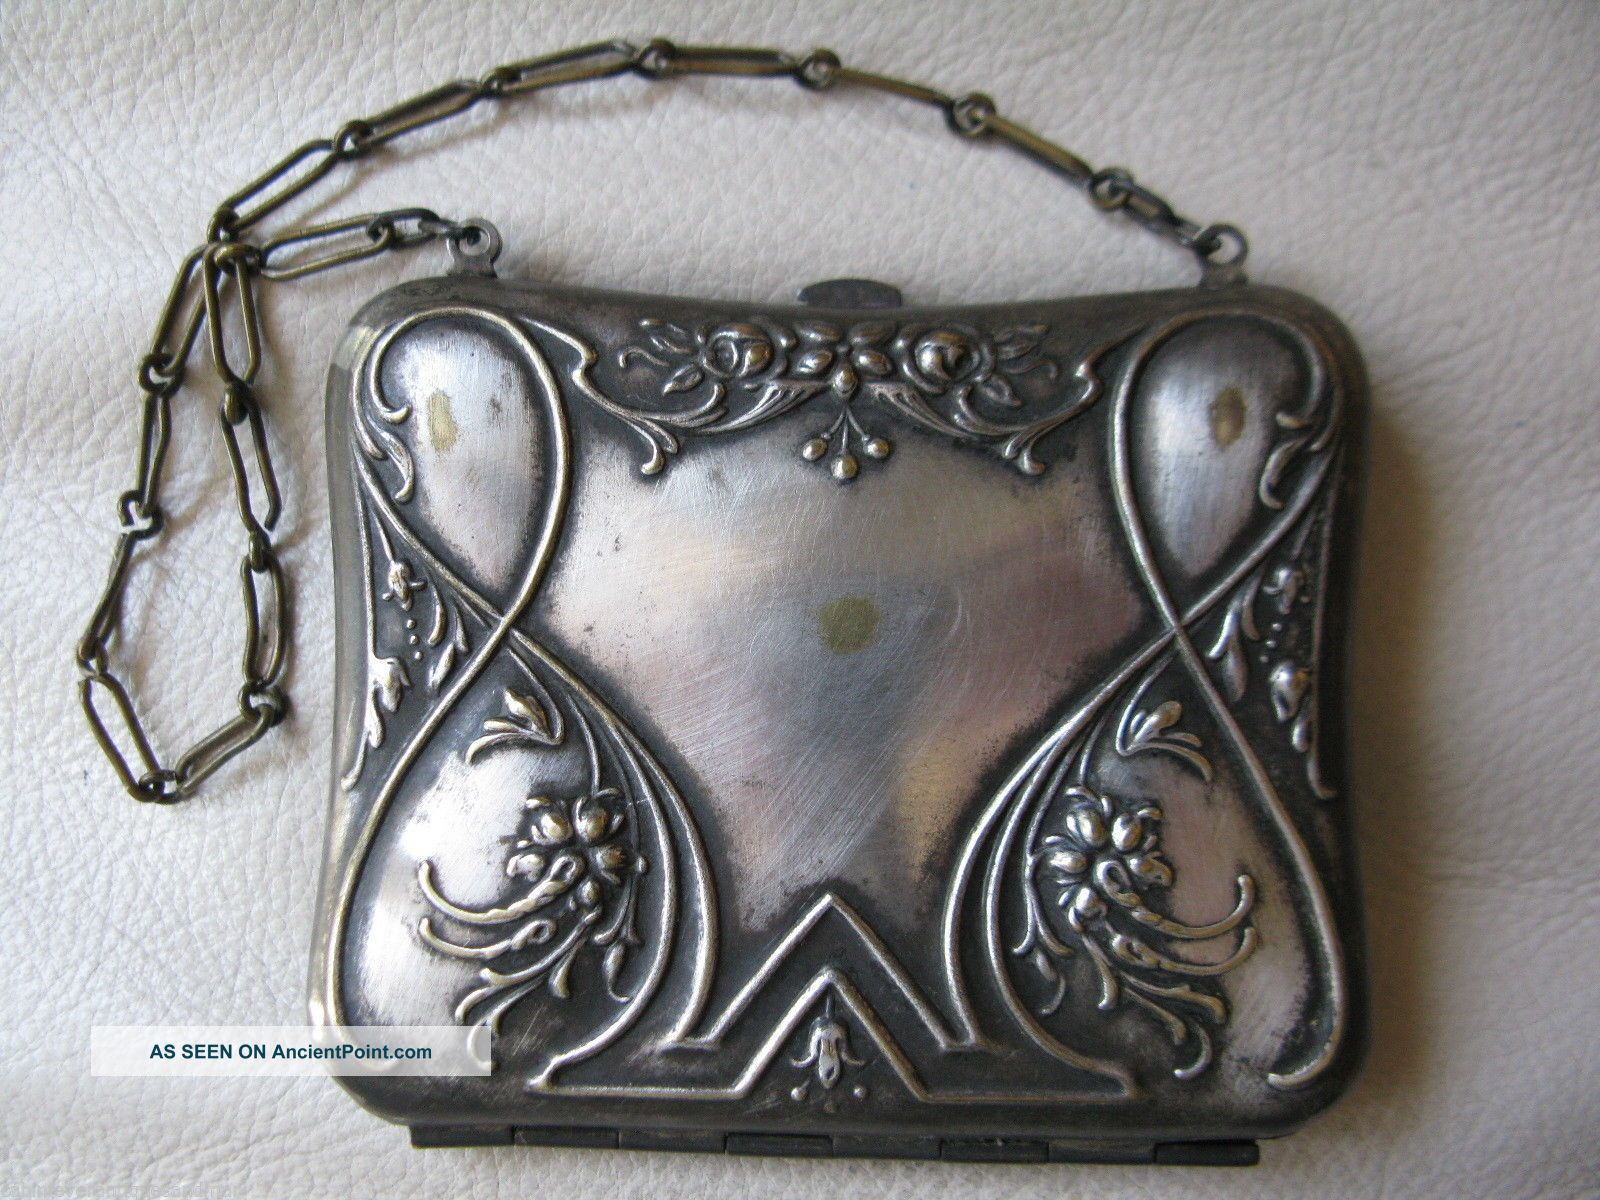 Antique Victorian Art Nouveau Silver Travel Sewing Needle Card Case Coin Purse Needles & Cases photo